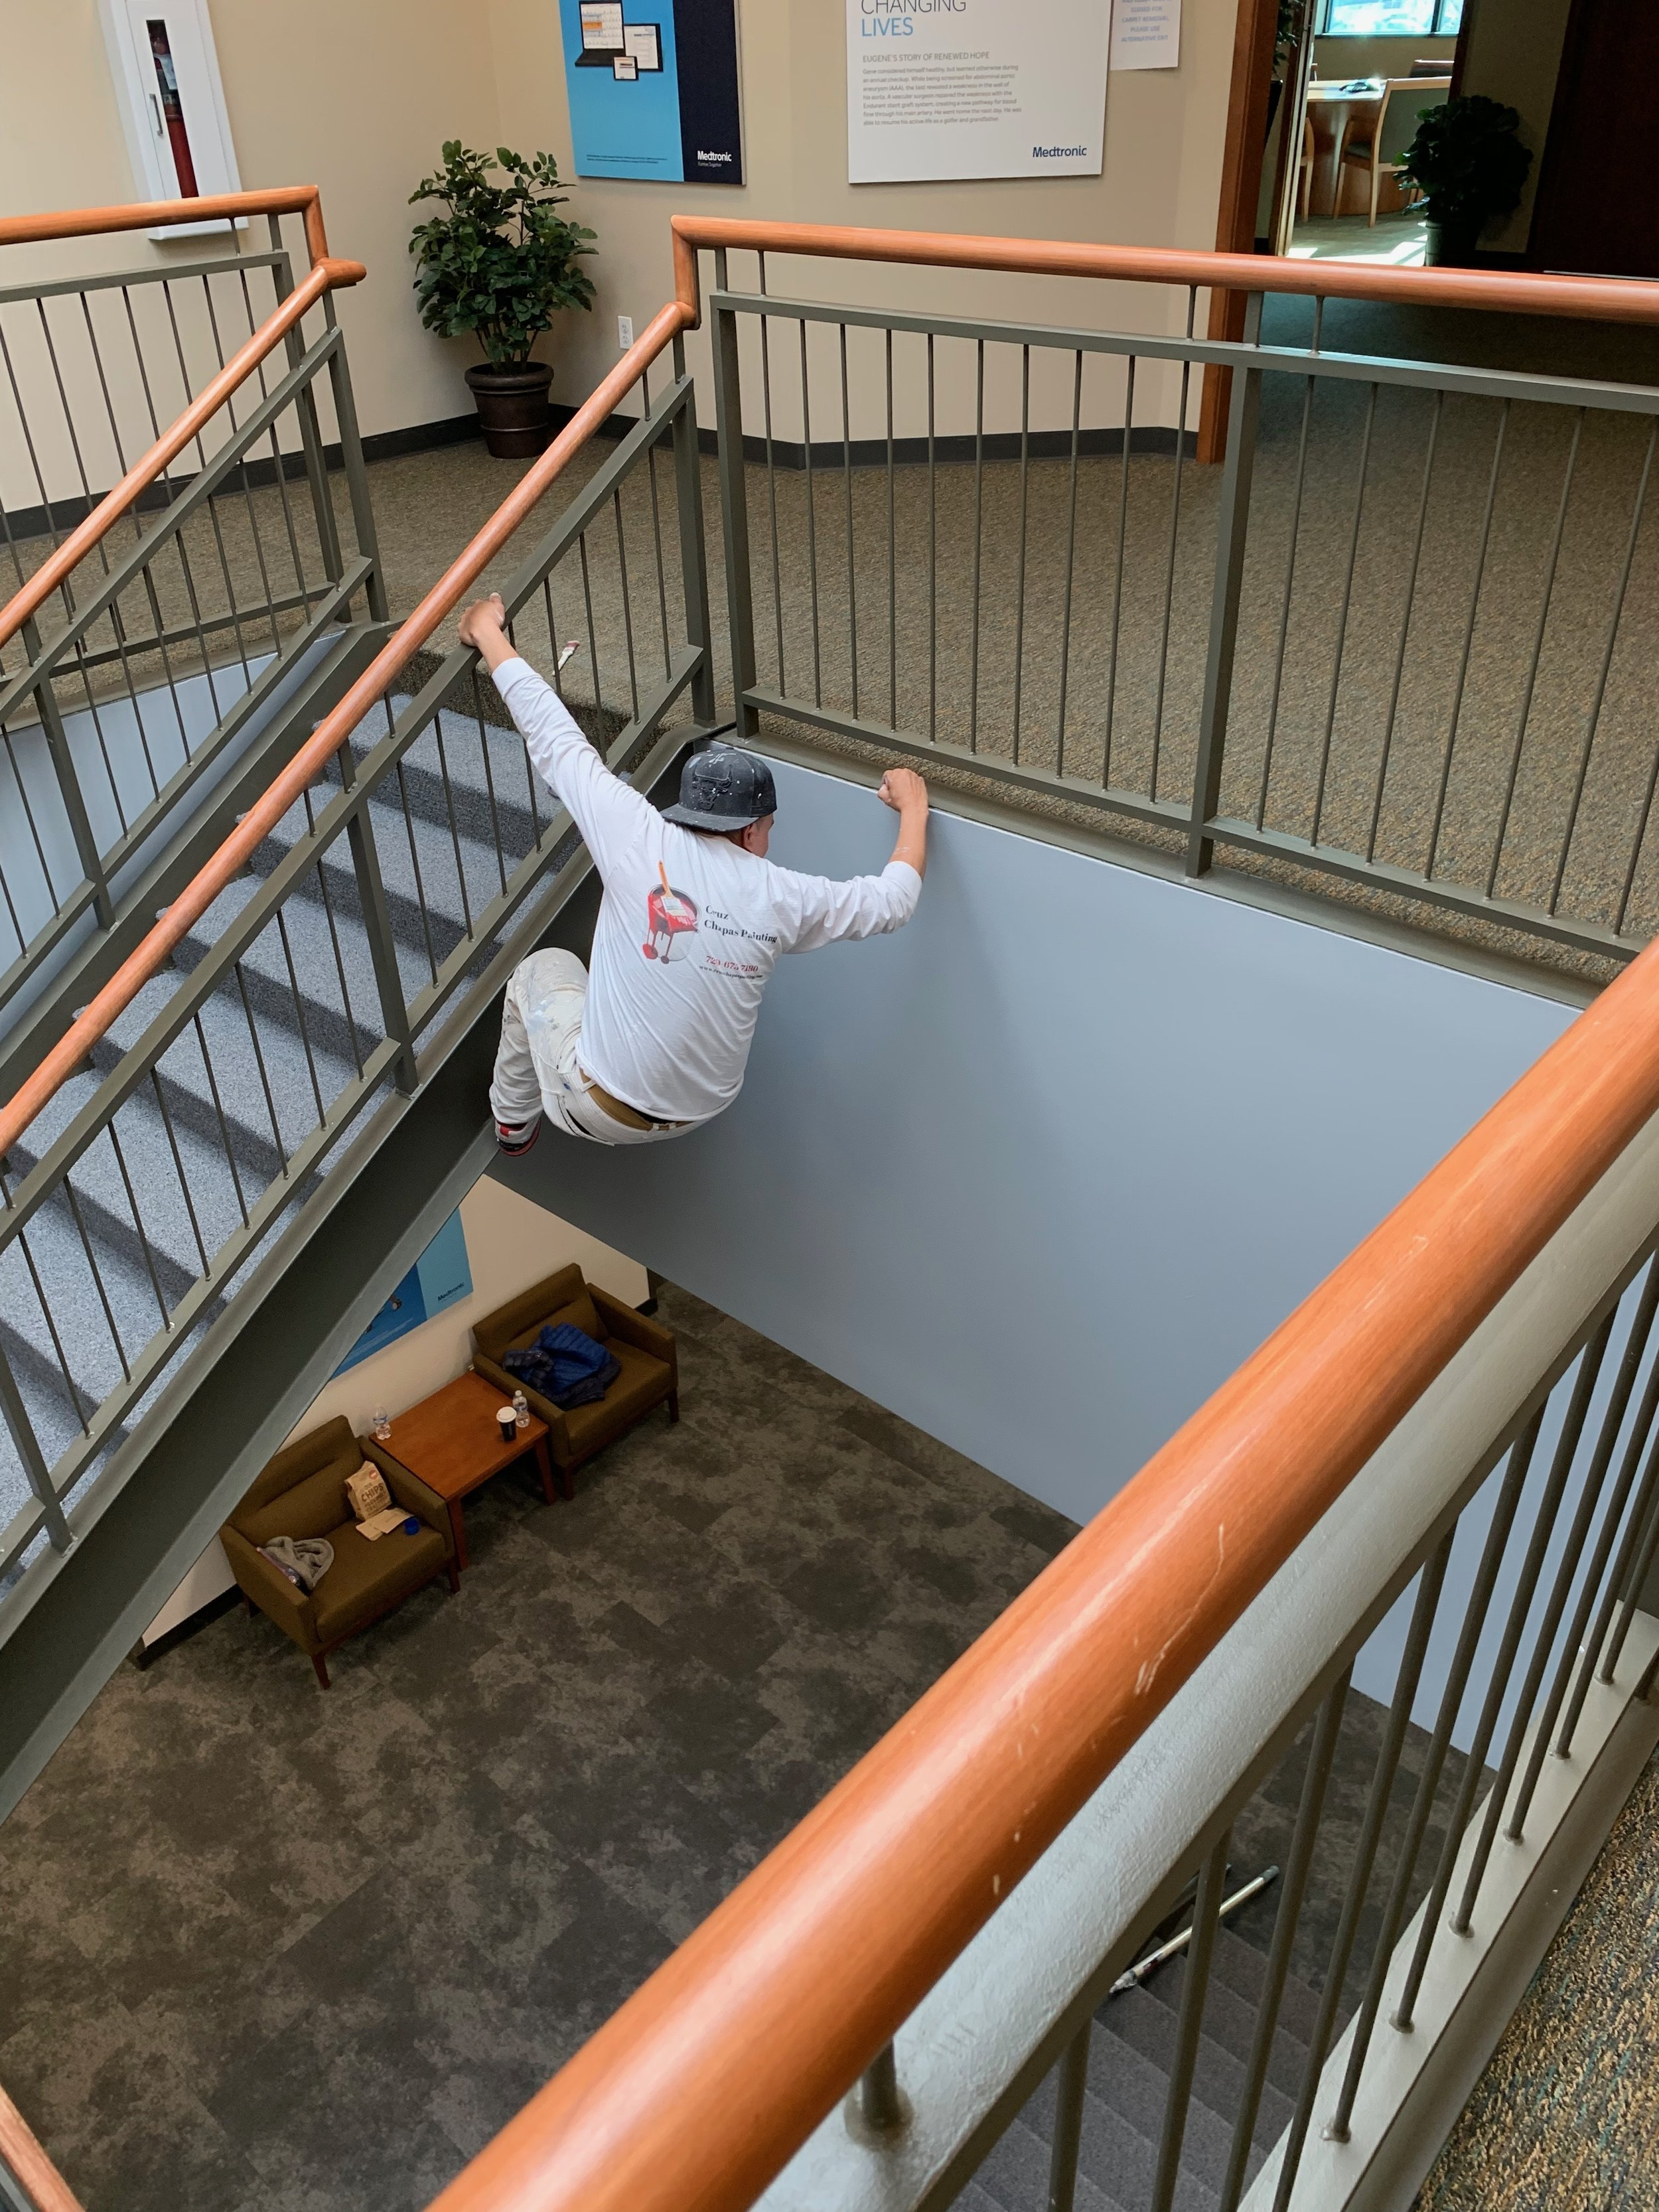 Medtronic building three core stairwell 4-27-19.JPG